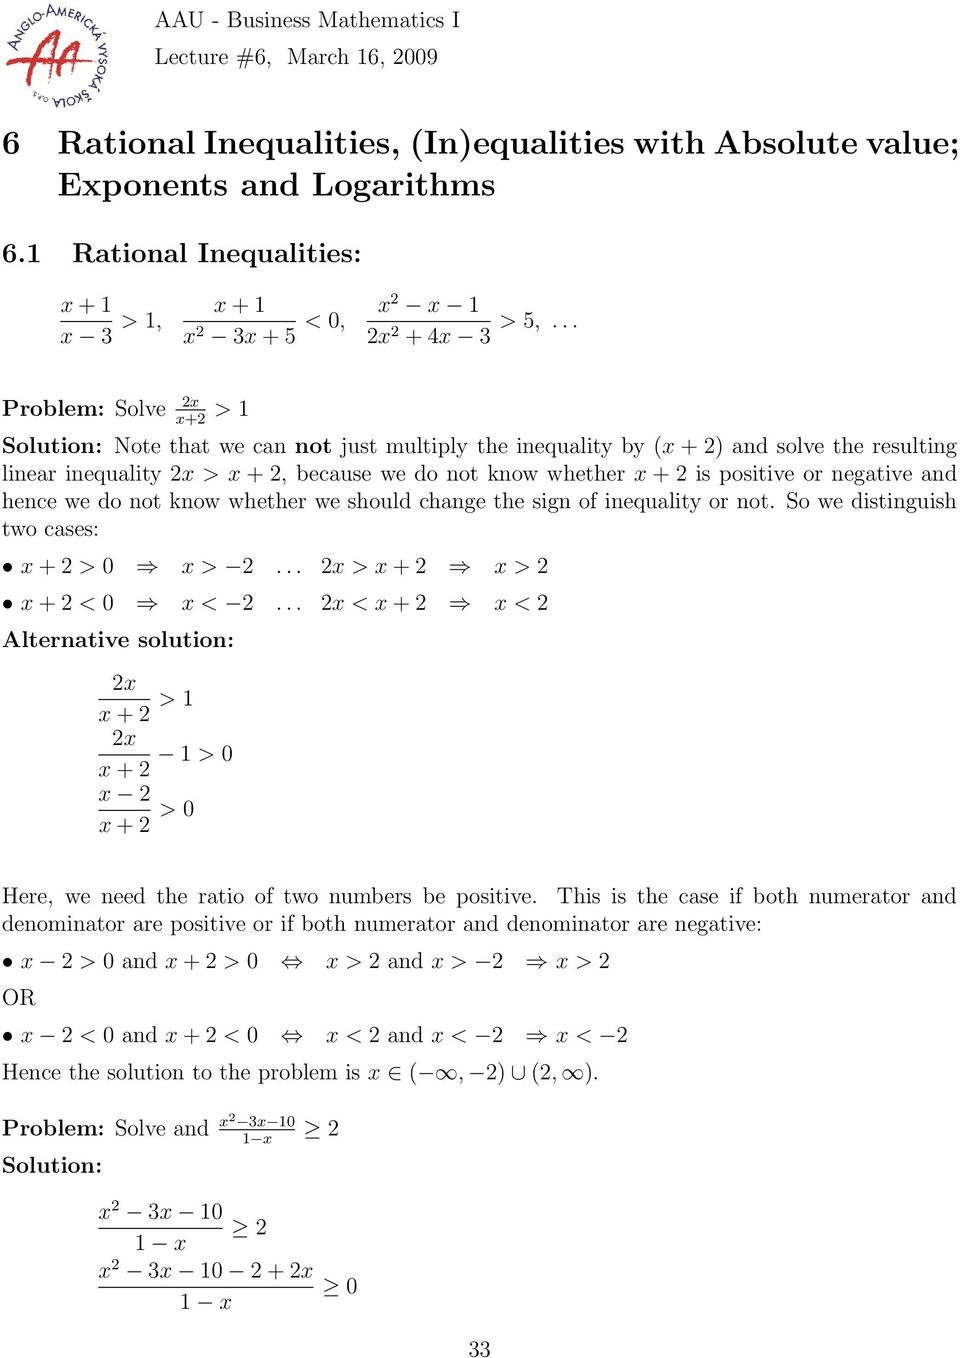 .. Problem: Solve 2x x+2 > 1 Note that we can not just multiply the inequality by (x + 2) and solve the resulting linear inequality 2x > x + 2, because we do not know whether x + 2 is positive or